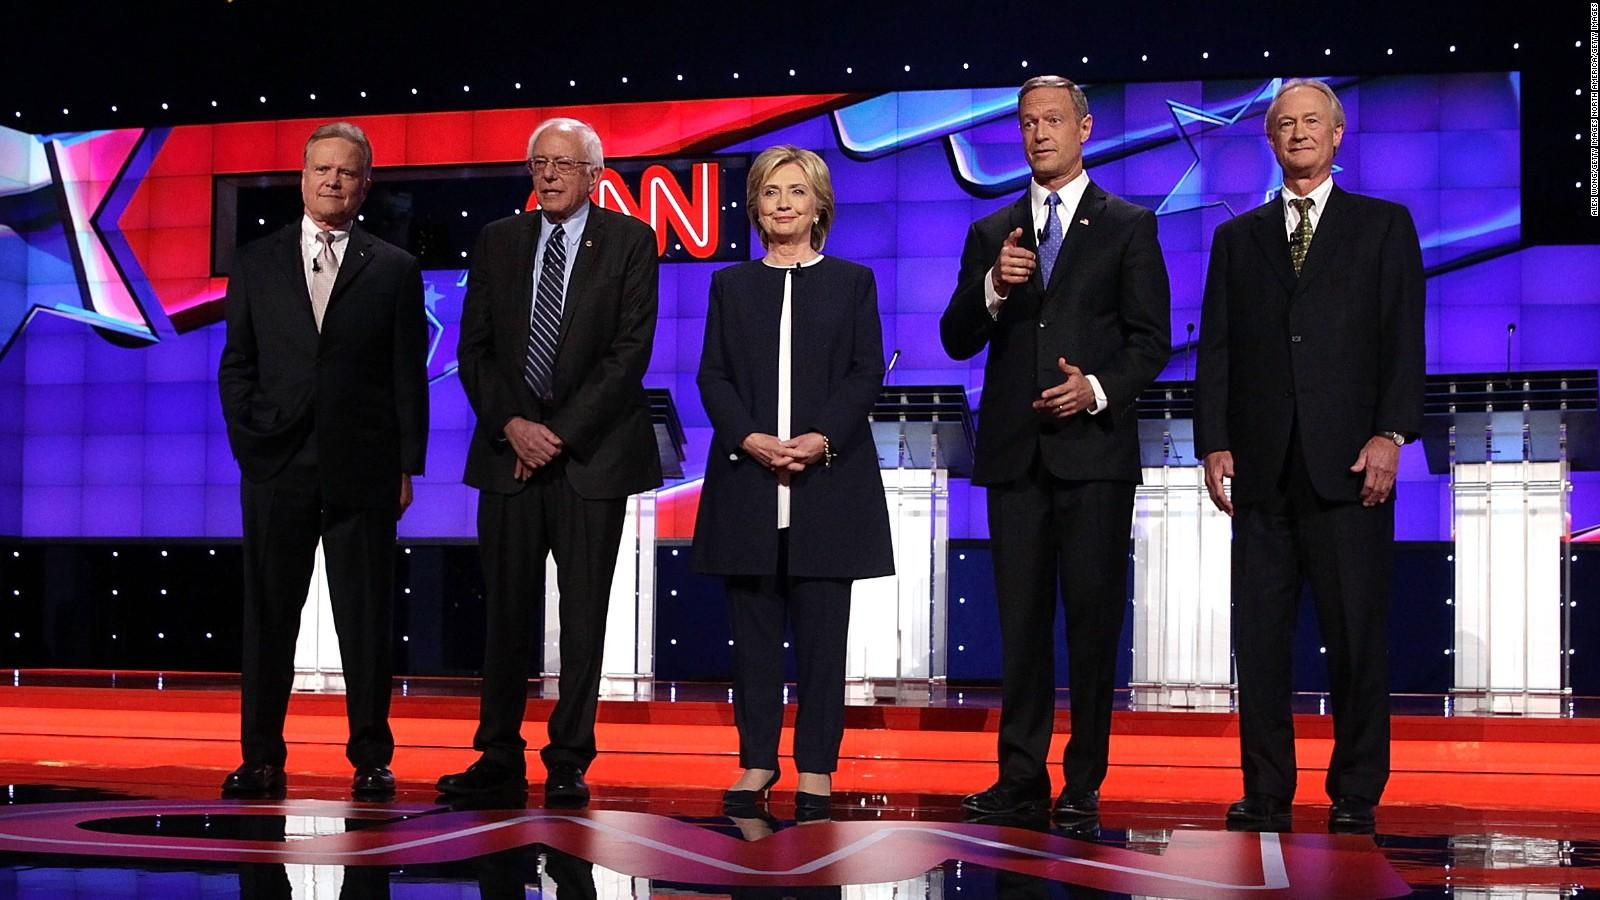 Who really won the democratic debate?